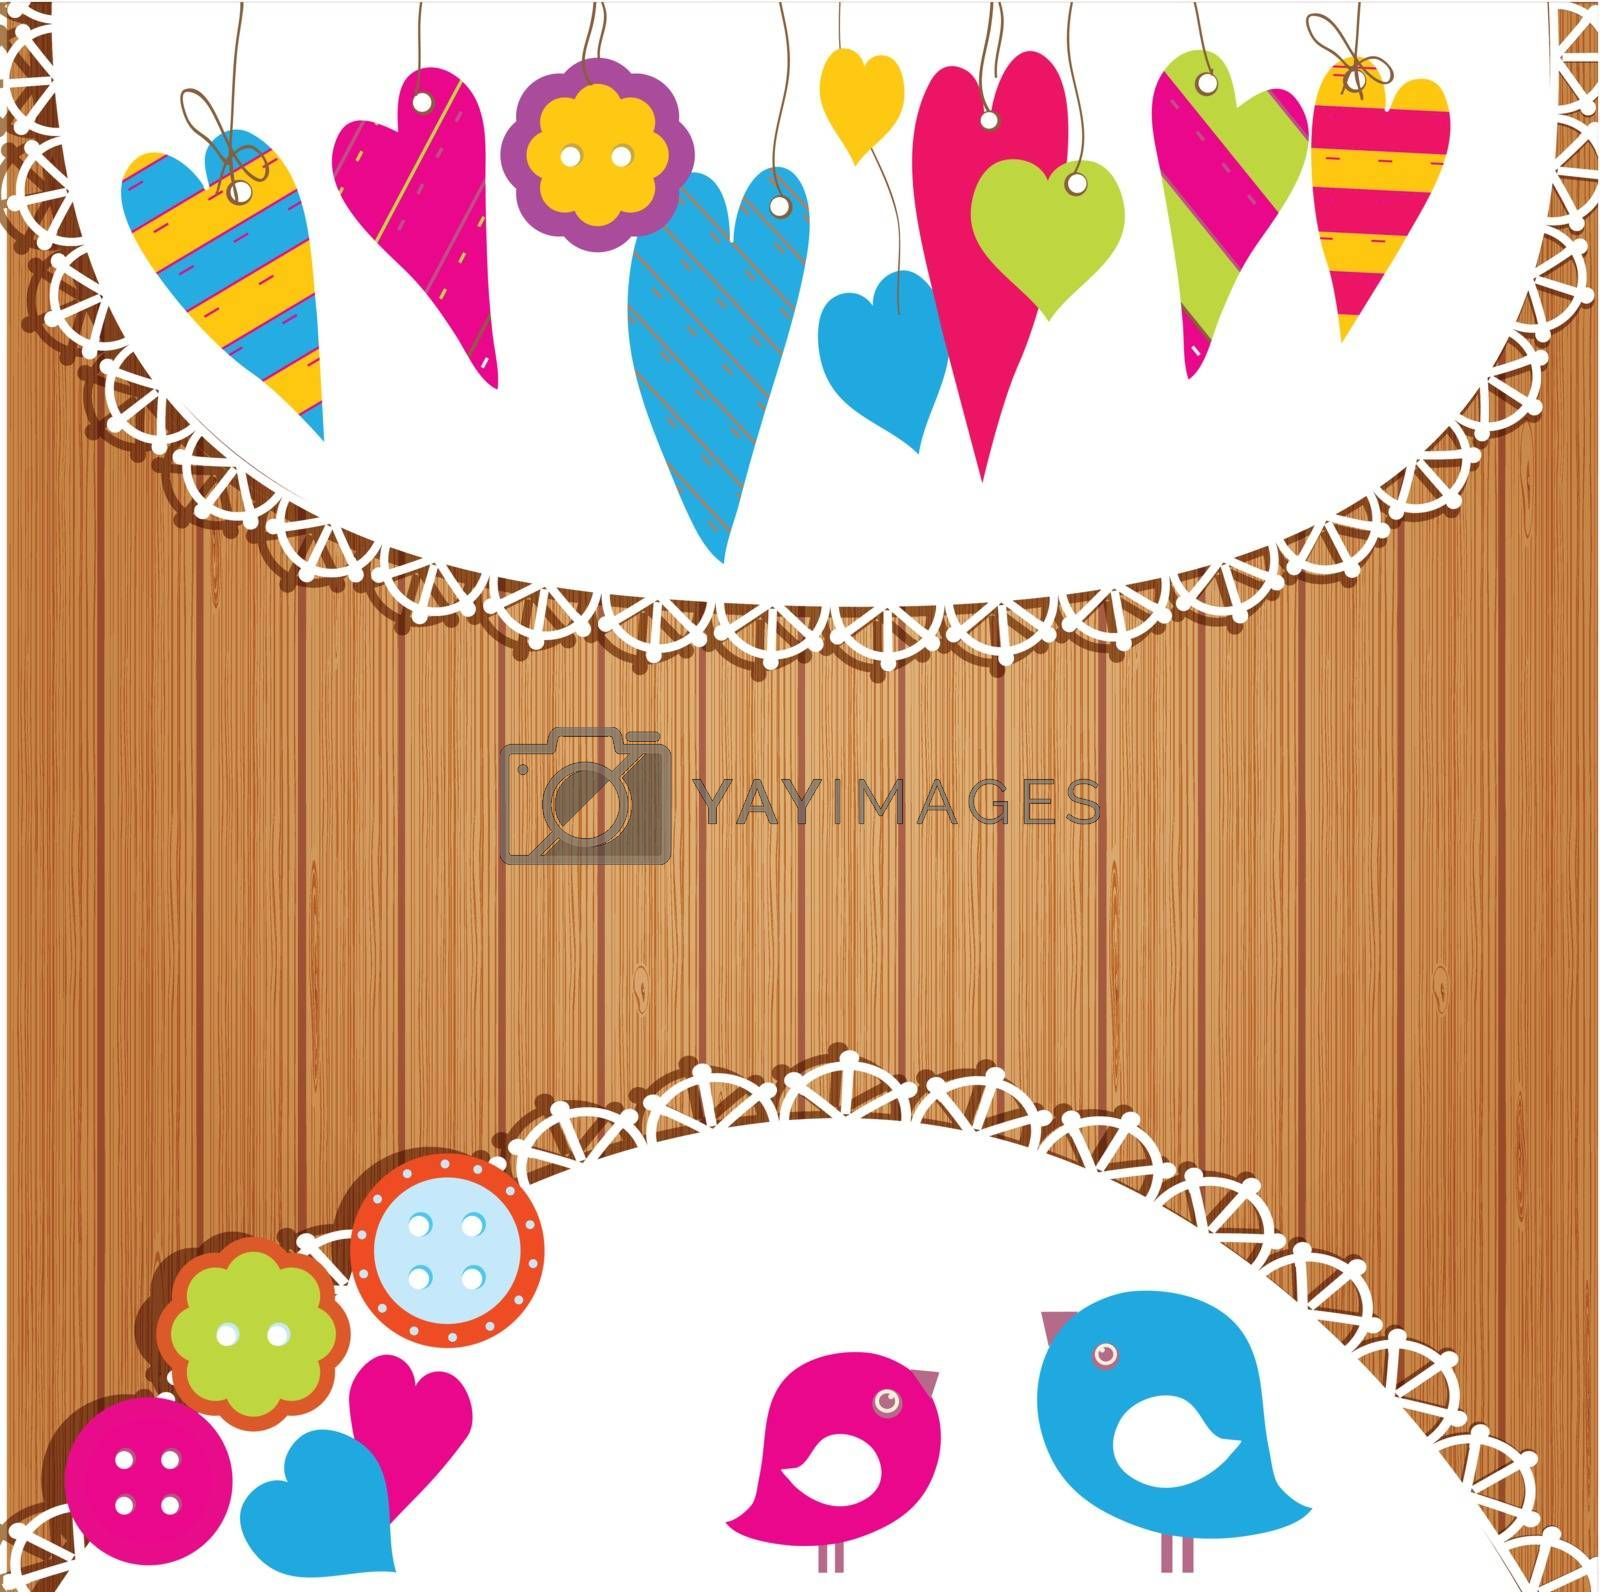 Colorful buntings, garlands and paper chain for indoor or outdoor festivity, birthday or celebration